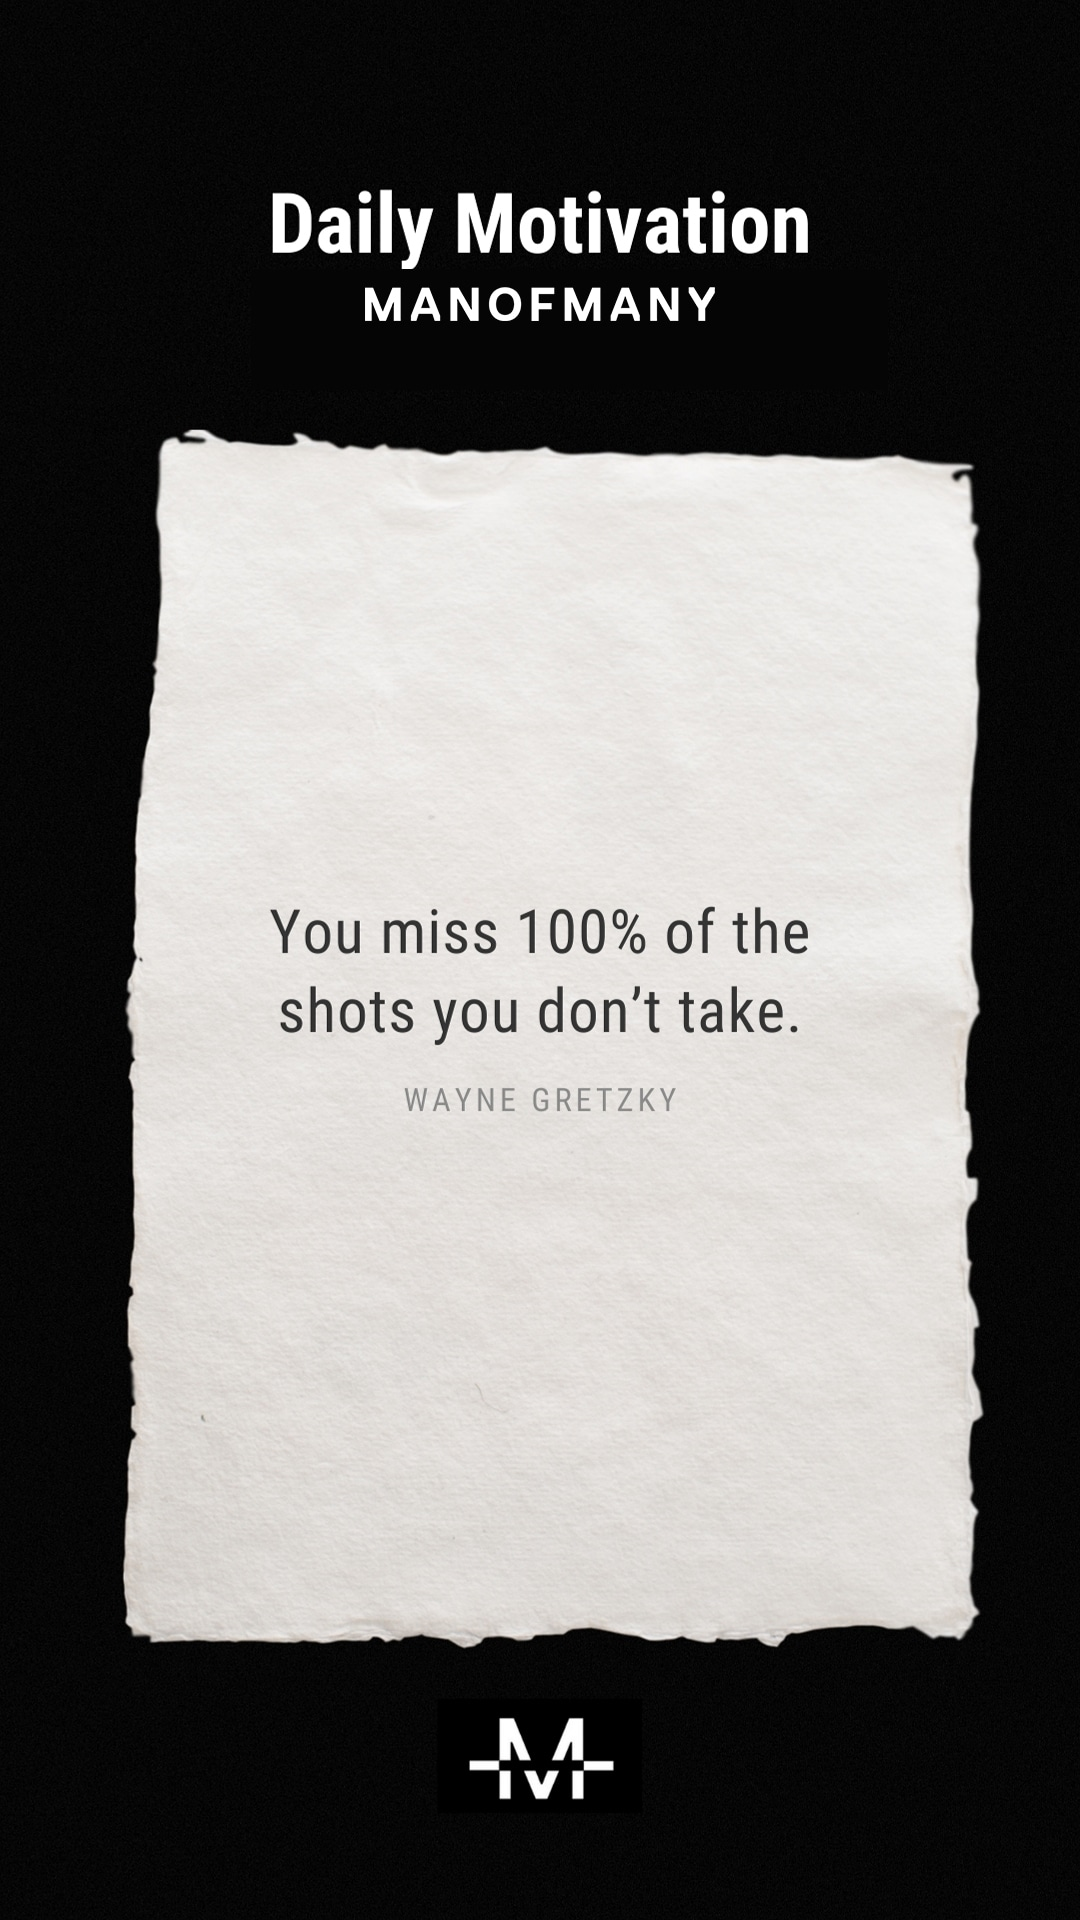 You miss 100% of the shots you don't take. –Wayne Gretzky quote